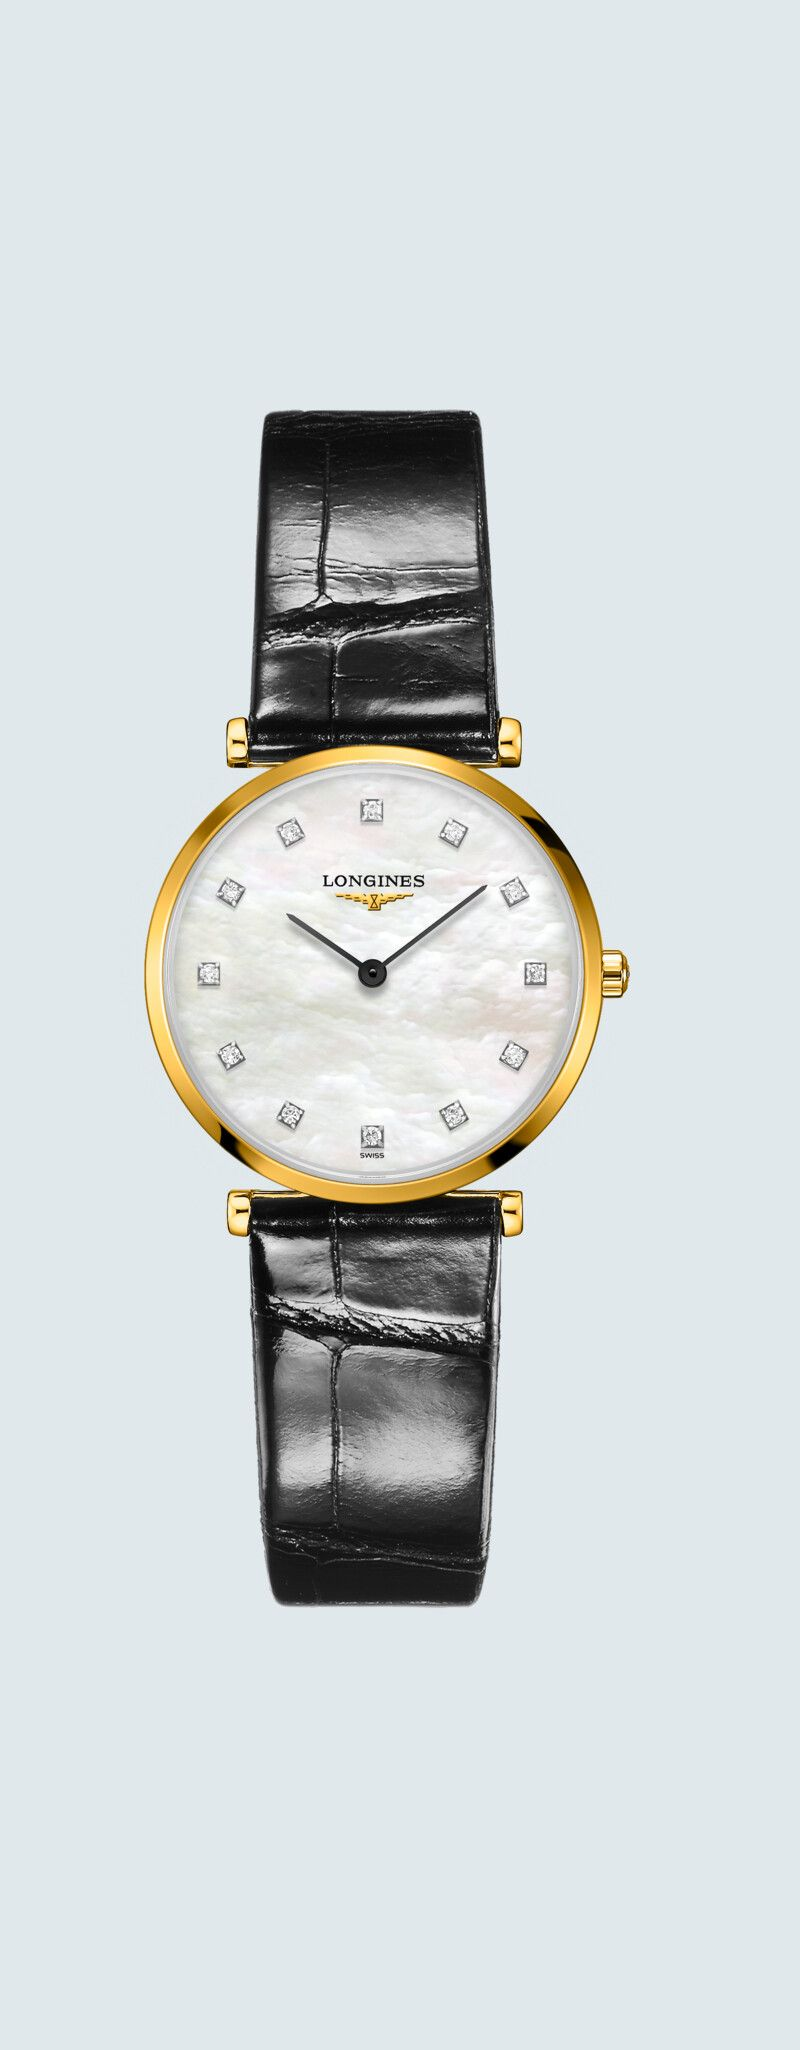 29.00 mm PVD jaune case with Nacre blanche dial and Bracelet Alligator Noir strap - case zoom view